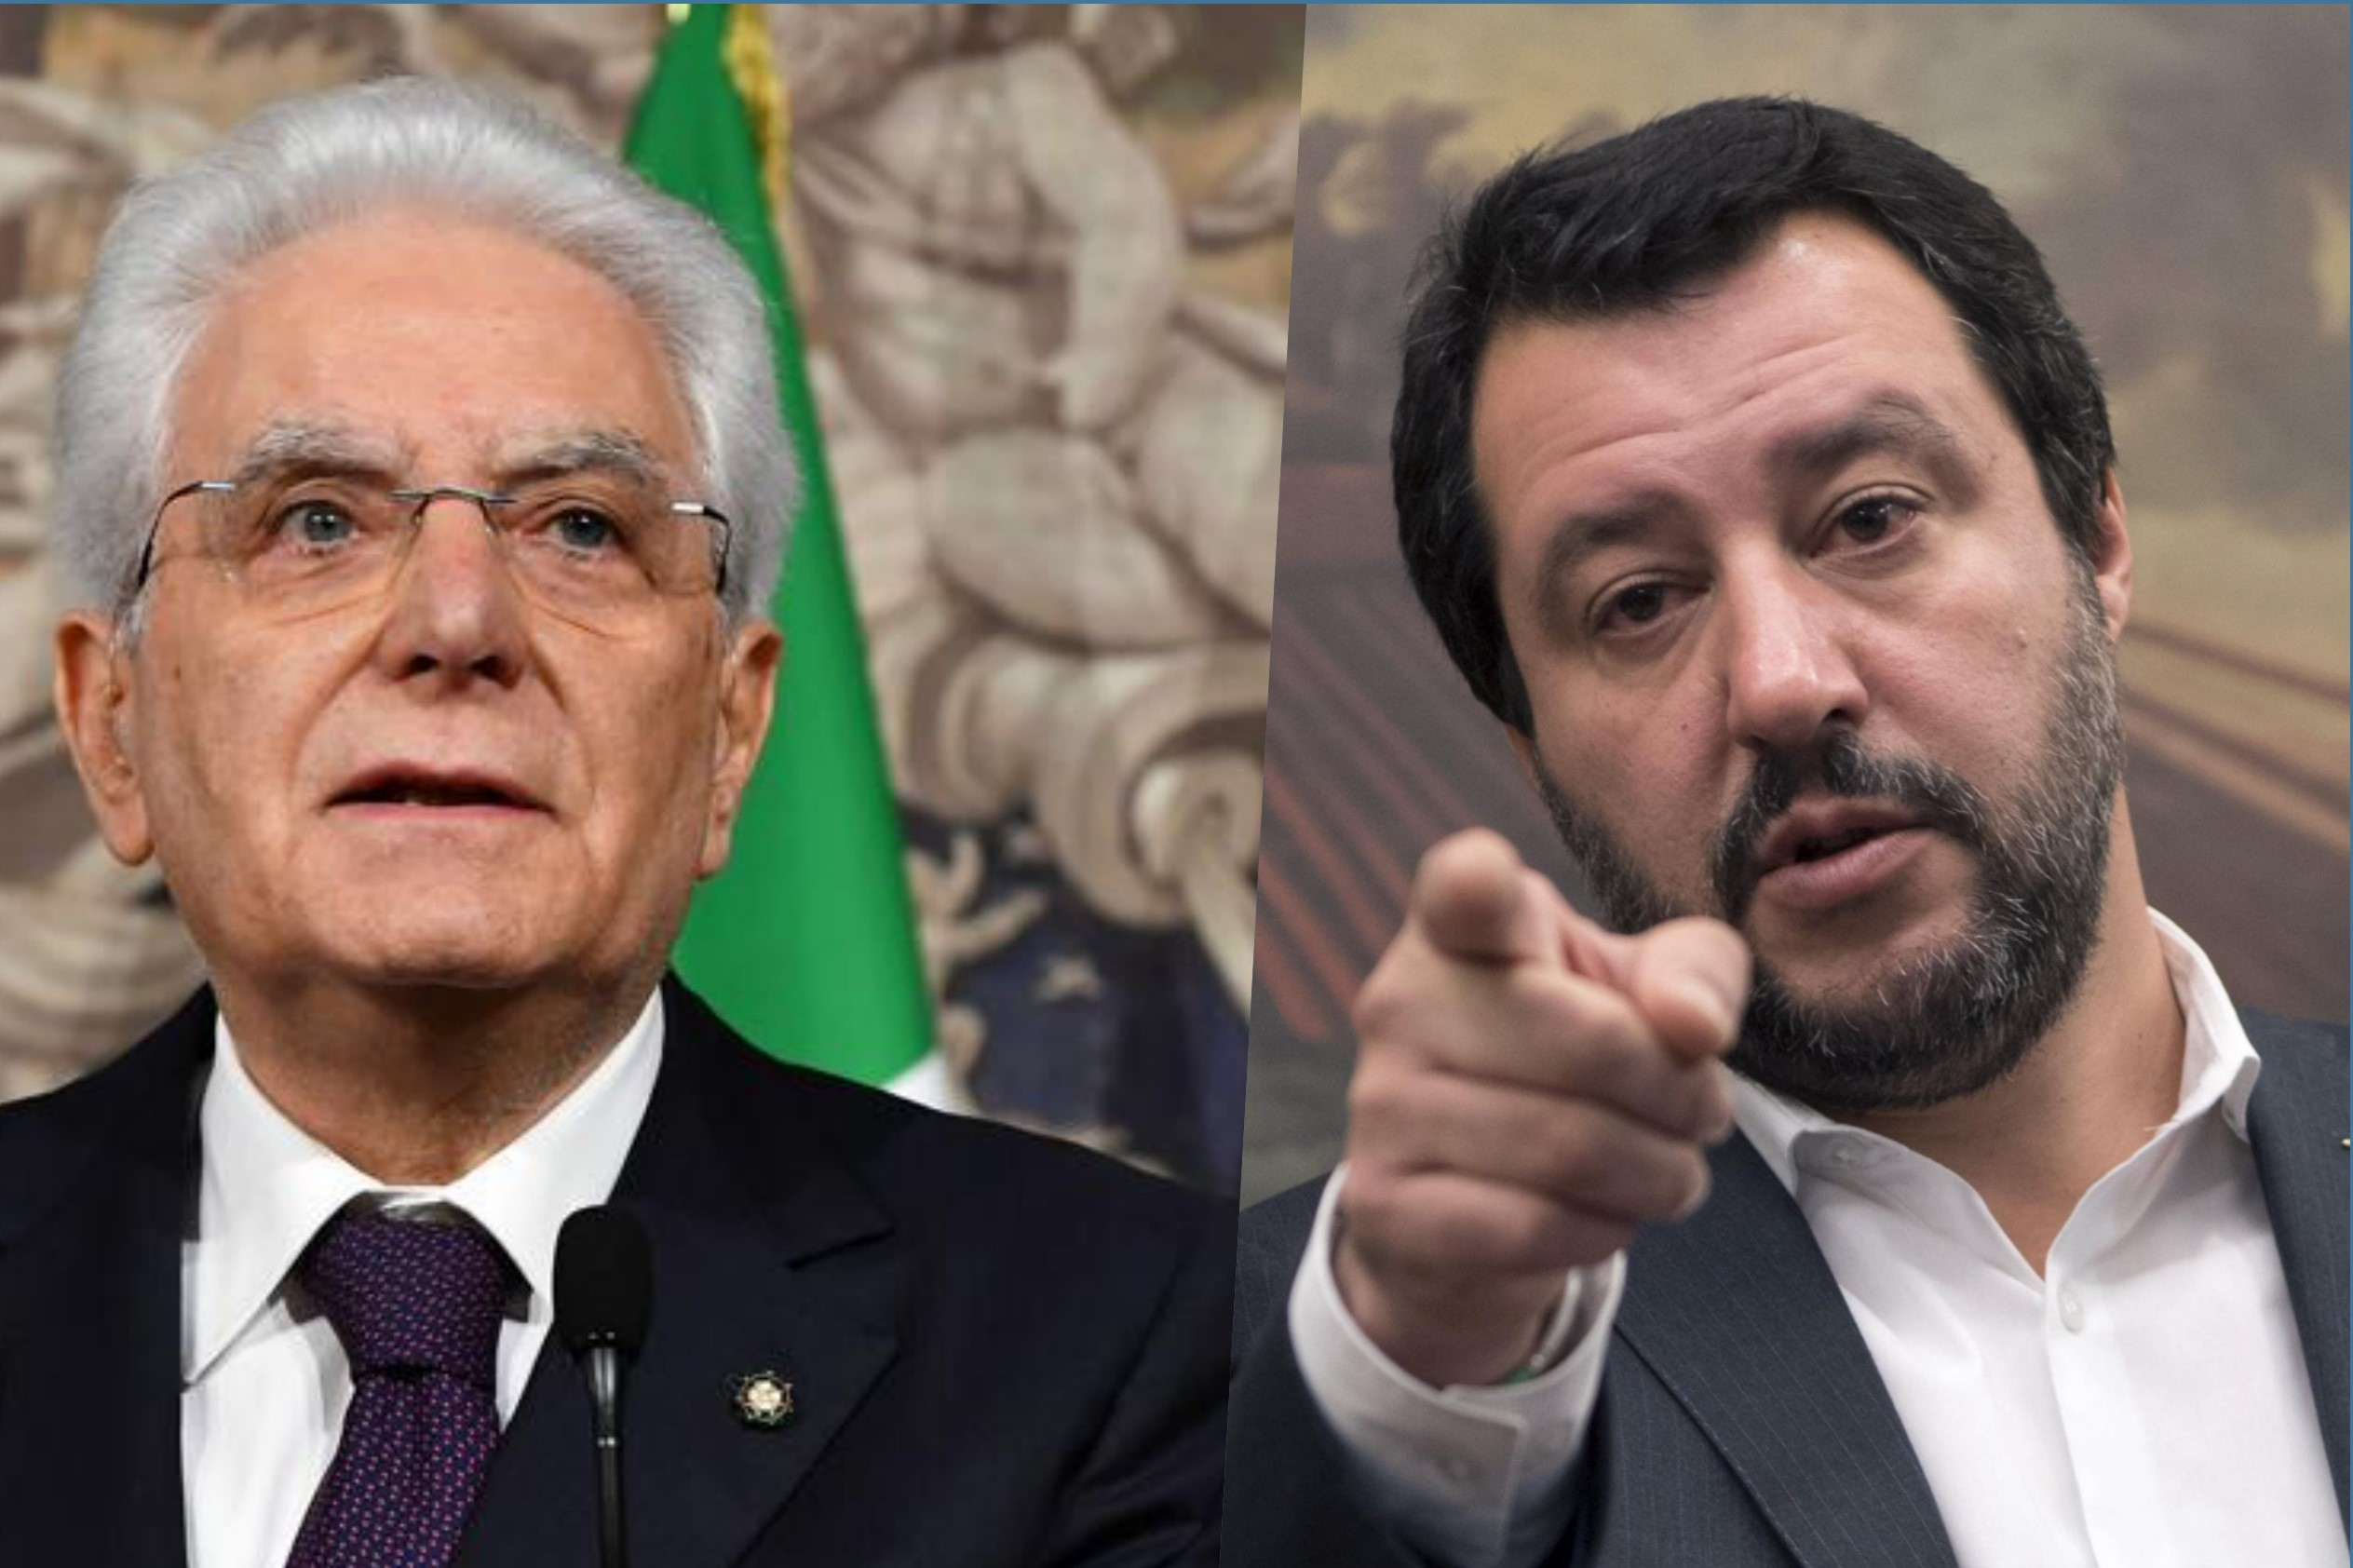 Will the president of Italy dissolve parliament?